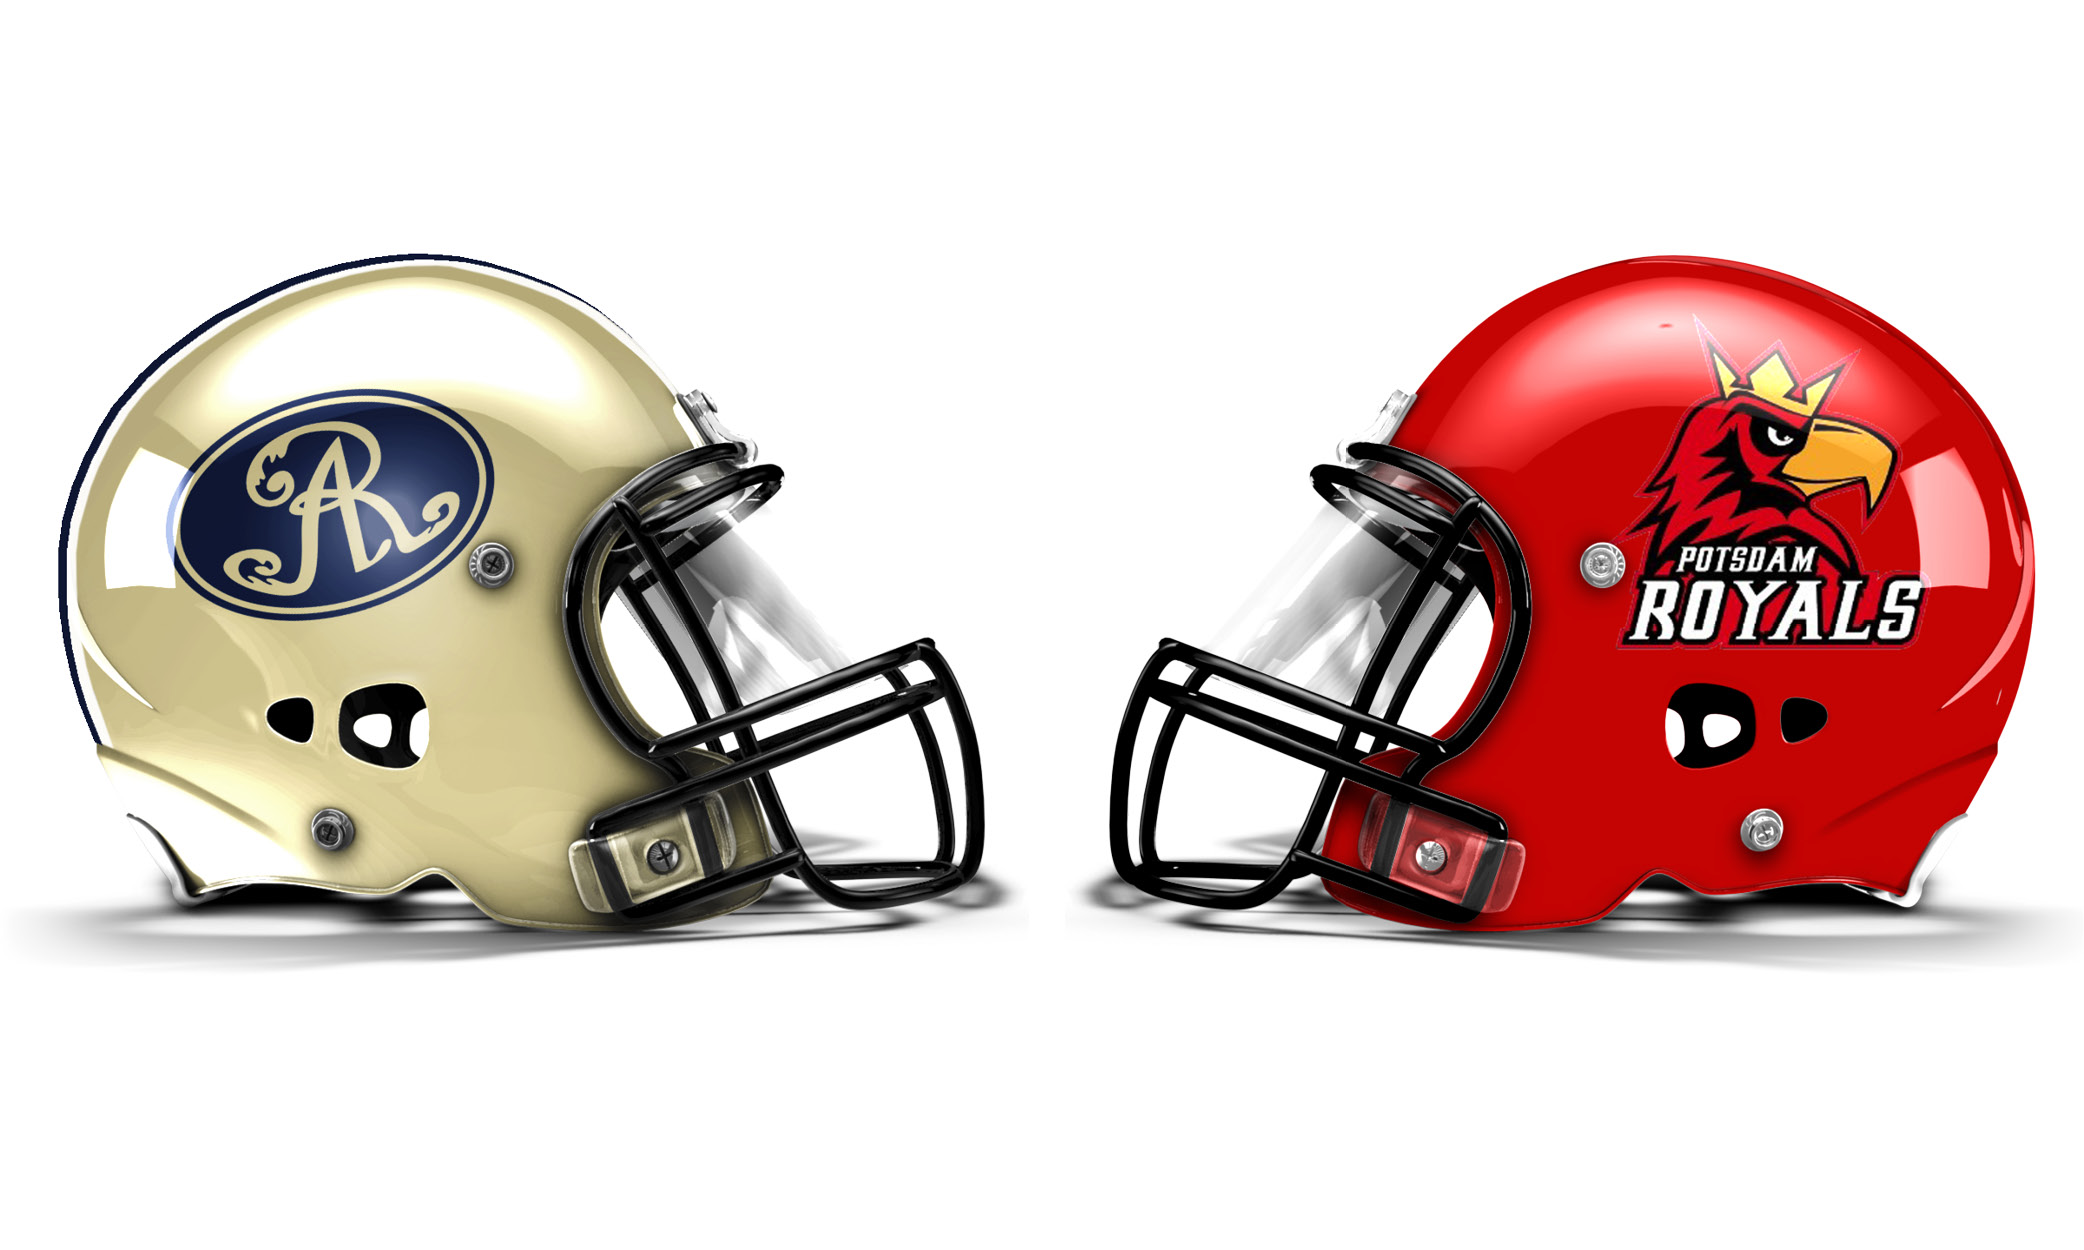 Image for Dresden Monarchs vs. Potsdam Royals